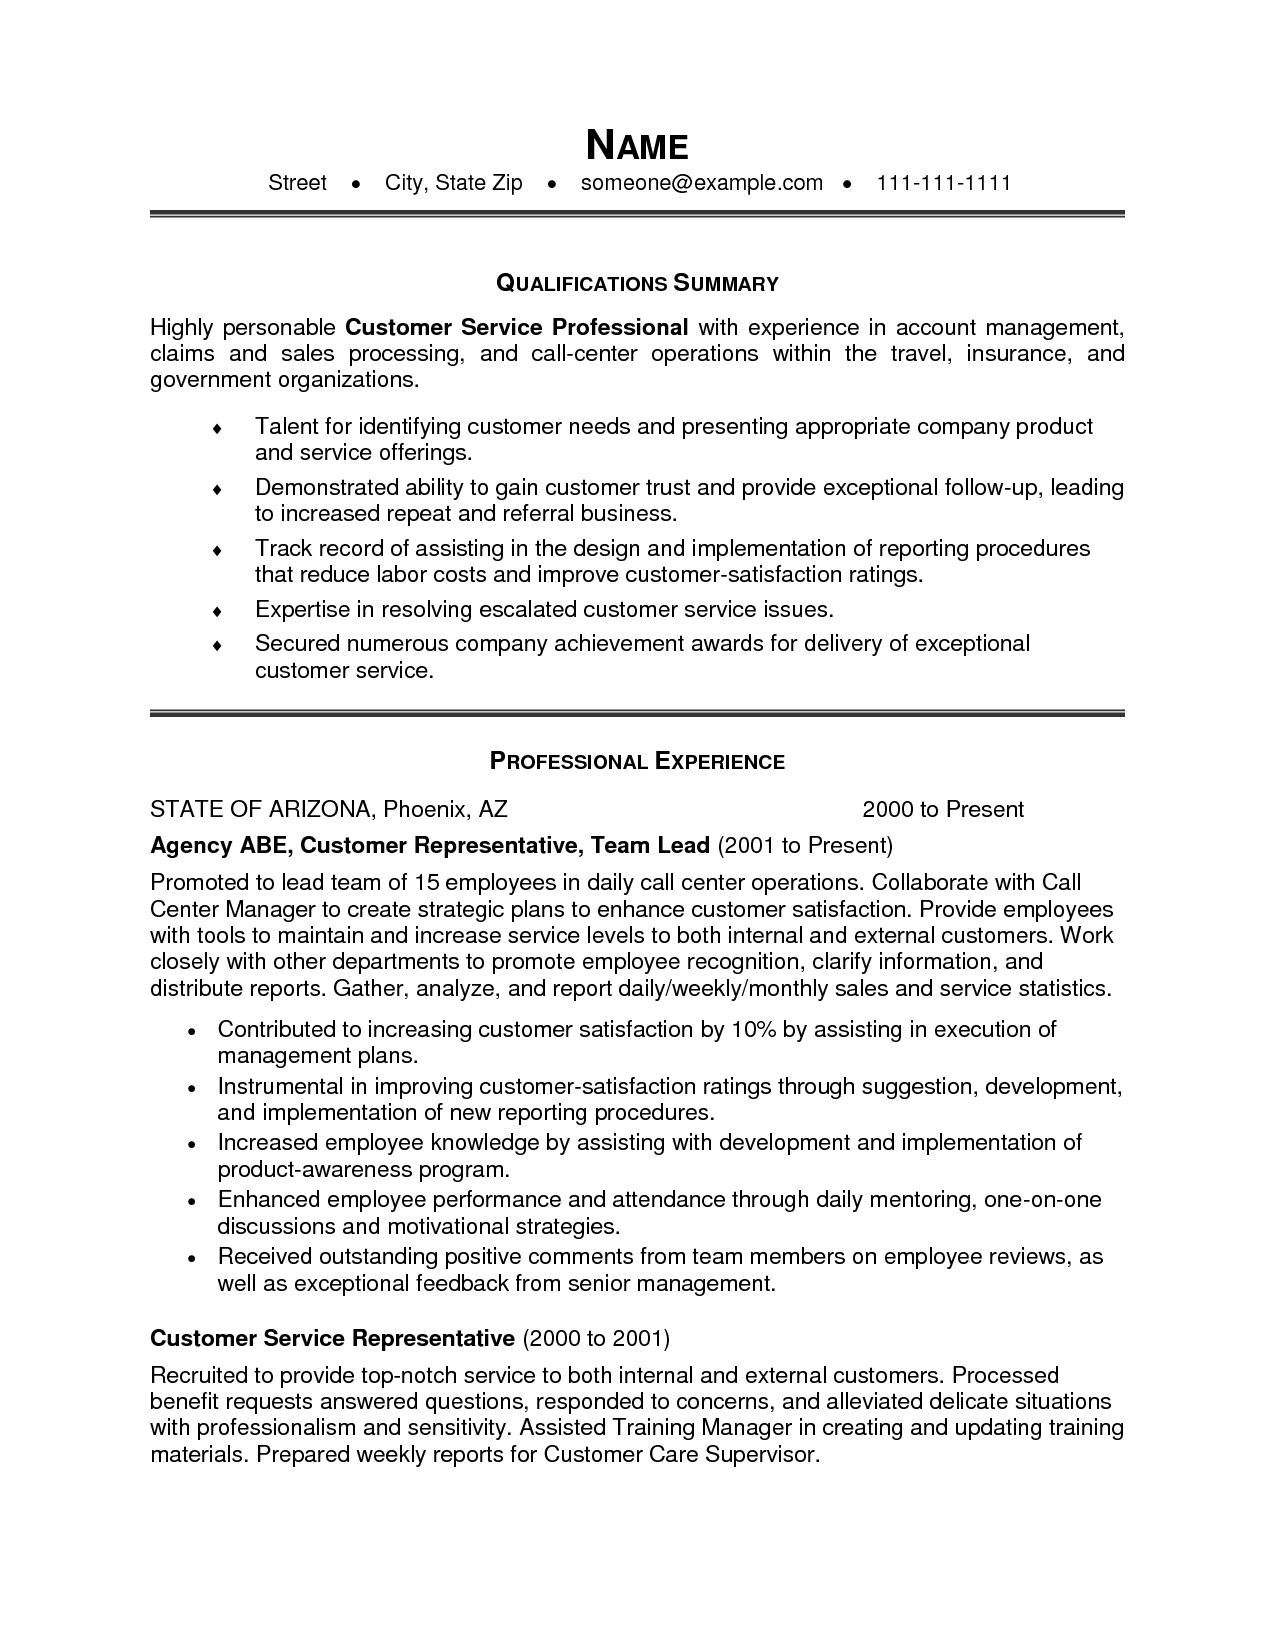 customer service resume summary examples resume summary